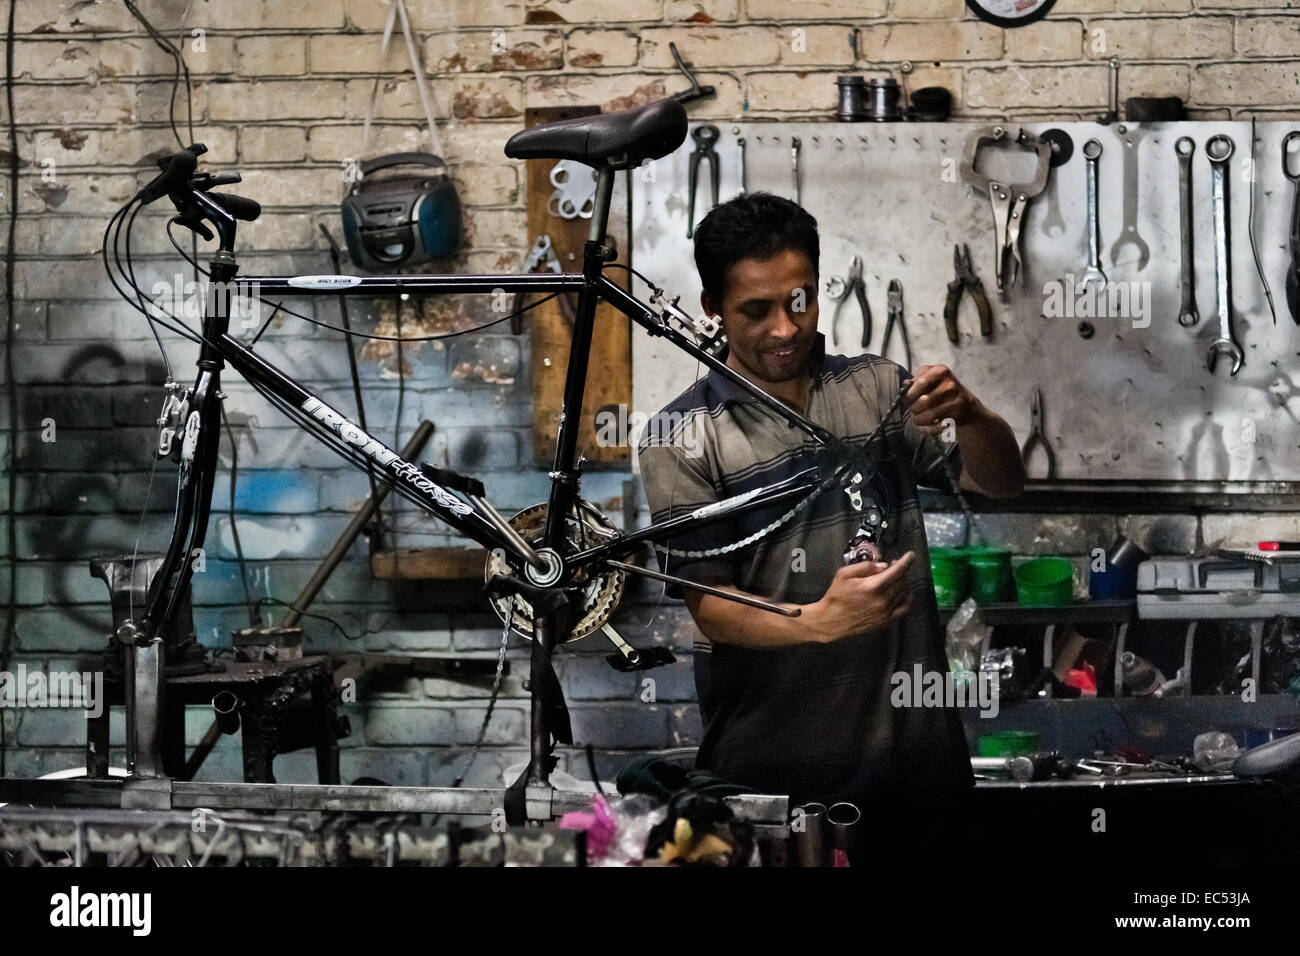 A bicycle mechanic assembles a custom made bike in a small scale bicycle factory in Bogota, Colombia, 10 April 2013. - Stock Image